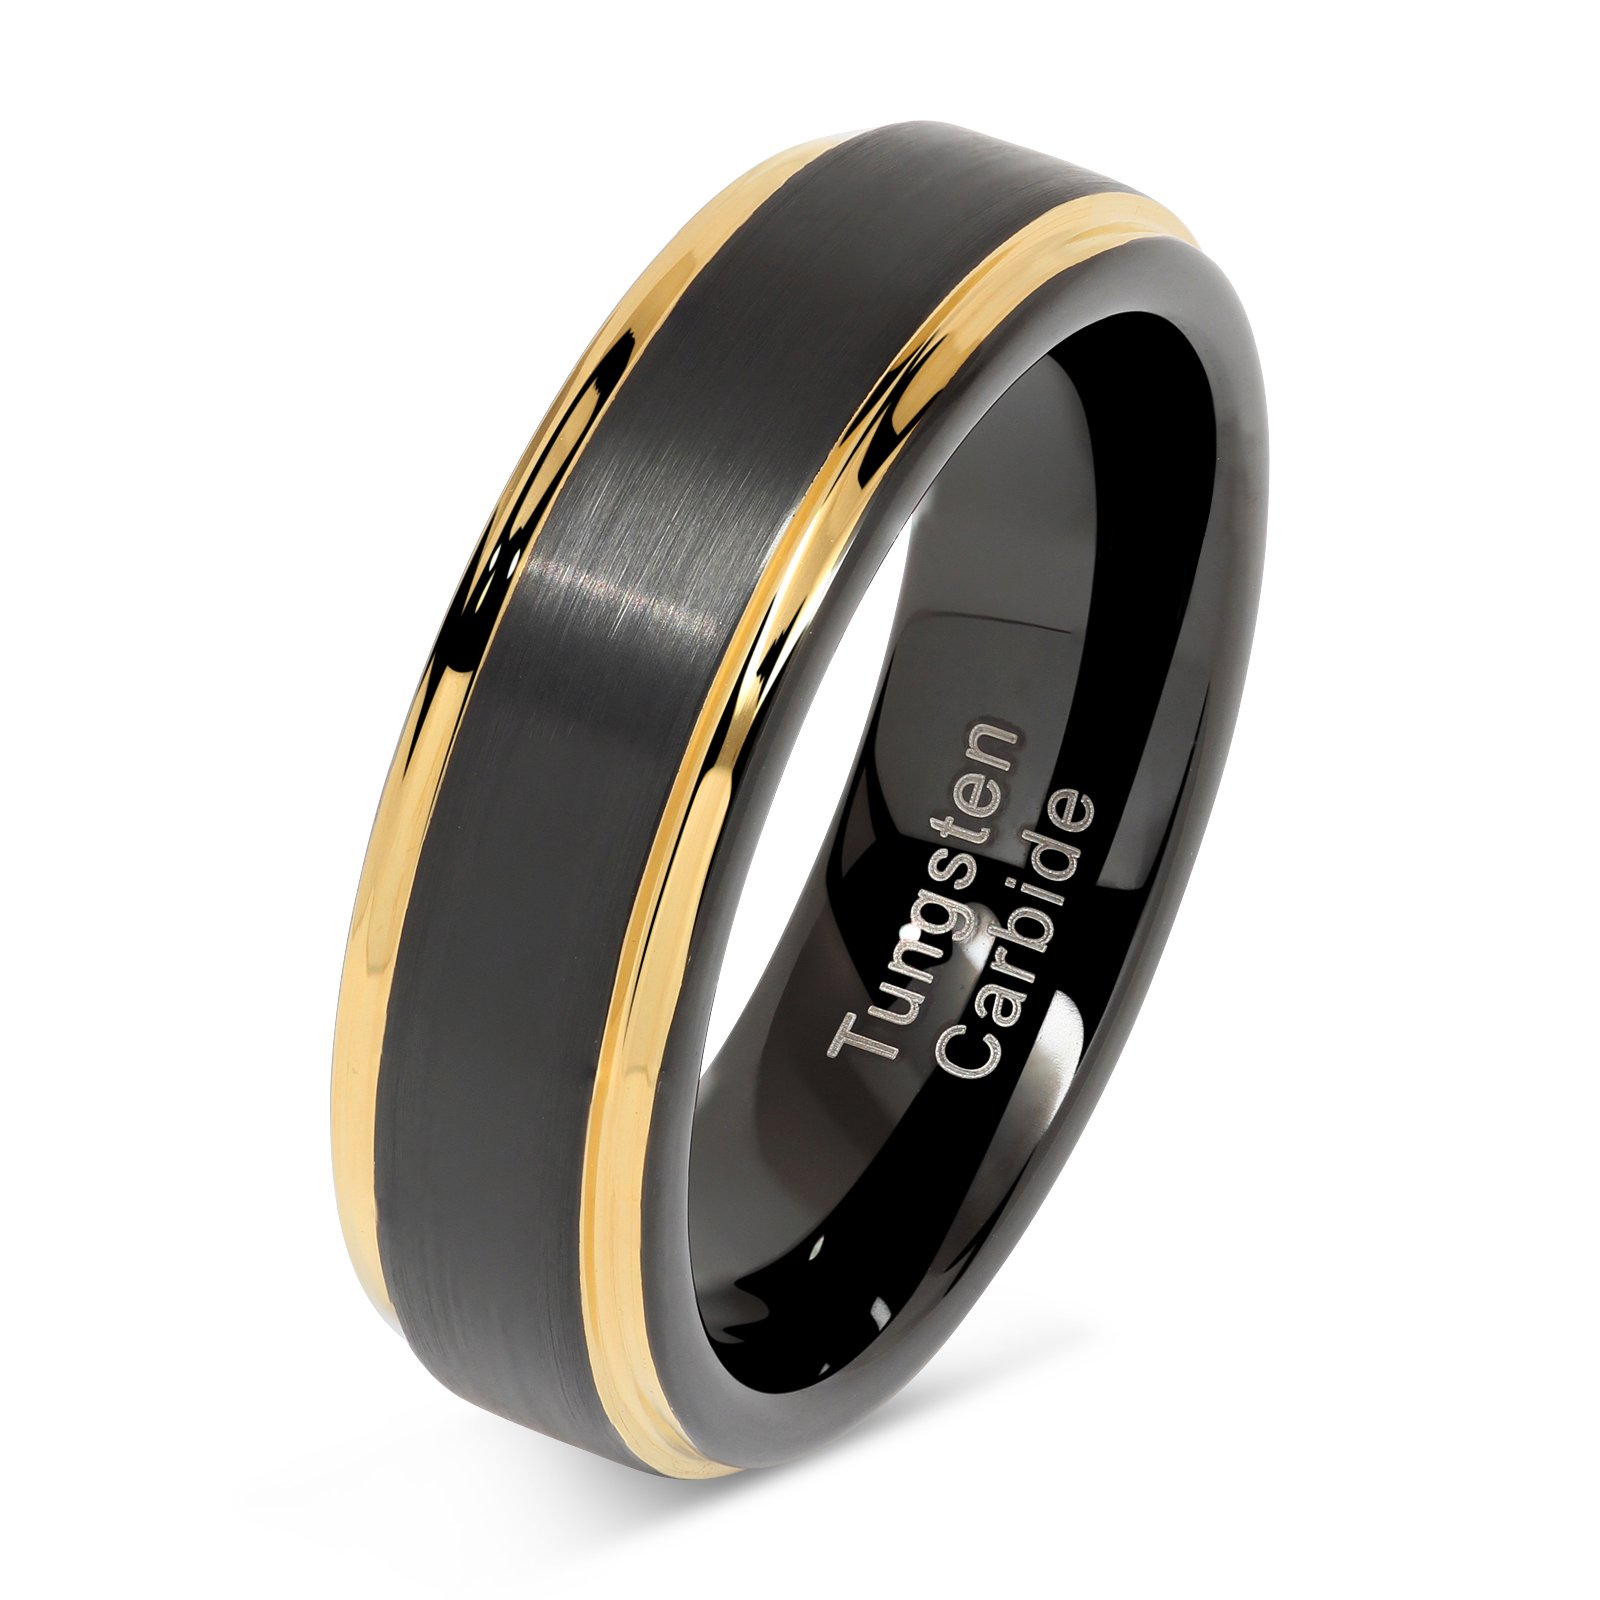 100S JEWELRY 6mm Tungsten Rings for Men Women Two Tone Black Gold Wedding Band Engagement Size 6-13 (7.5)